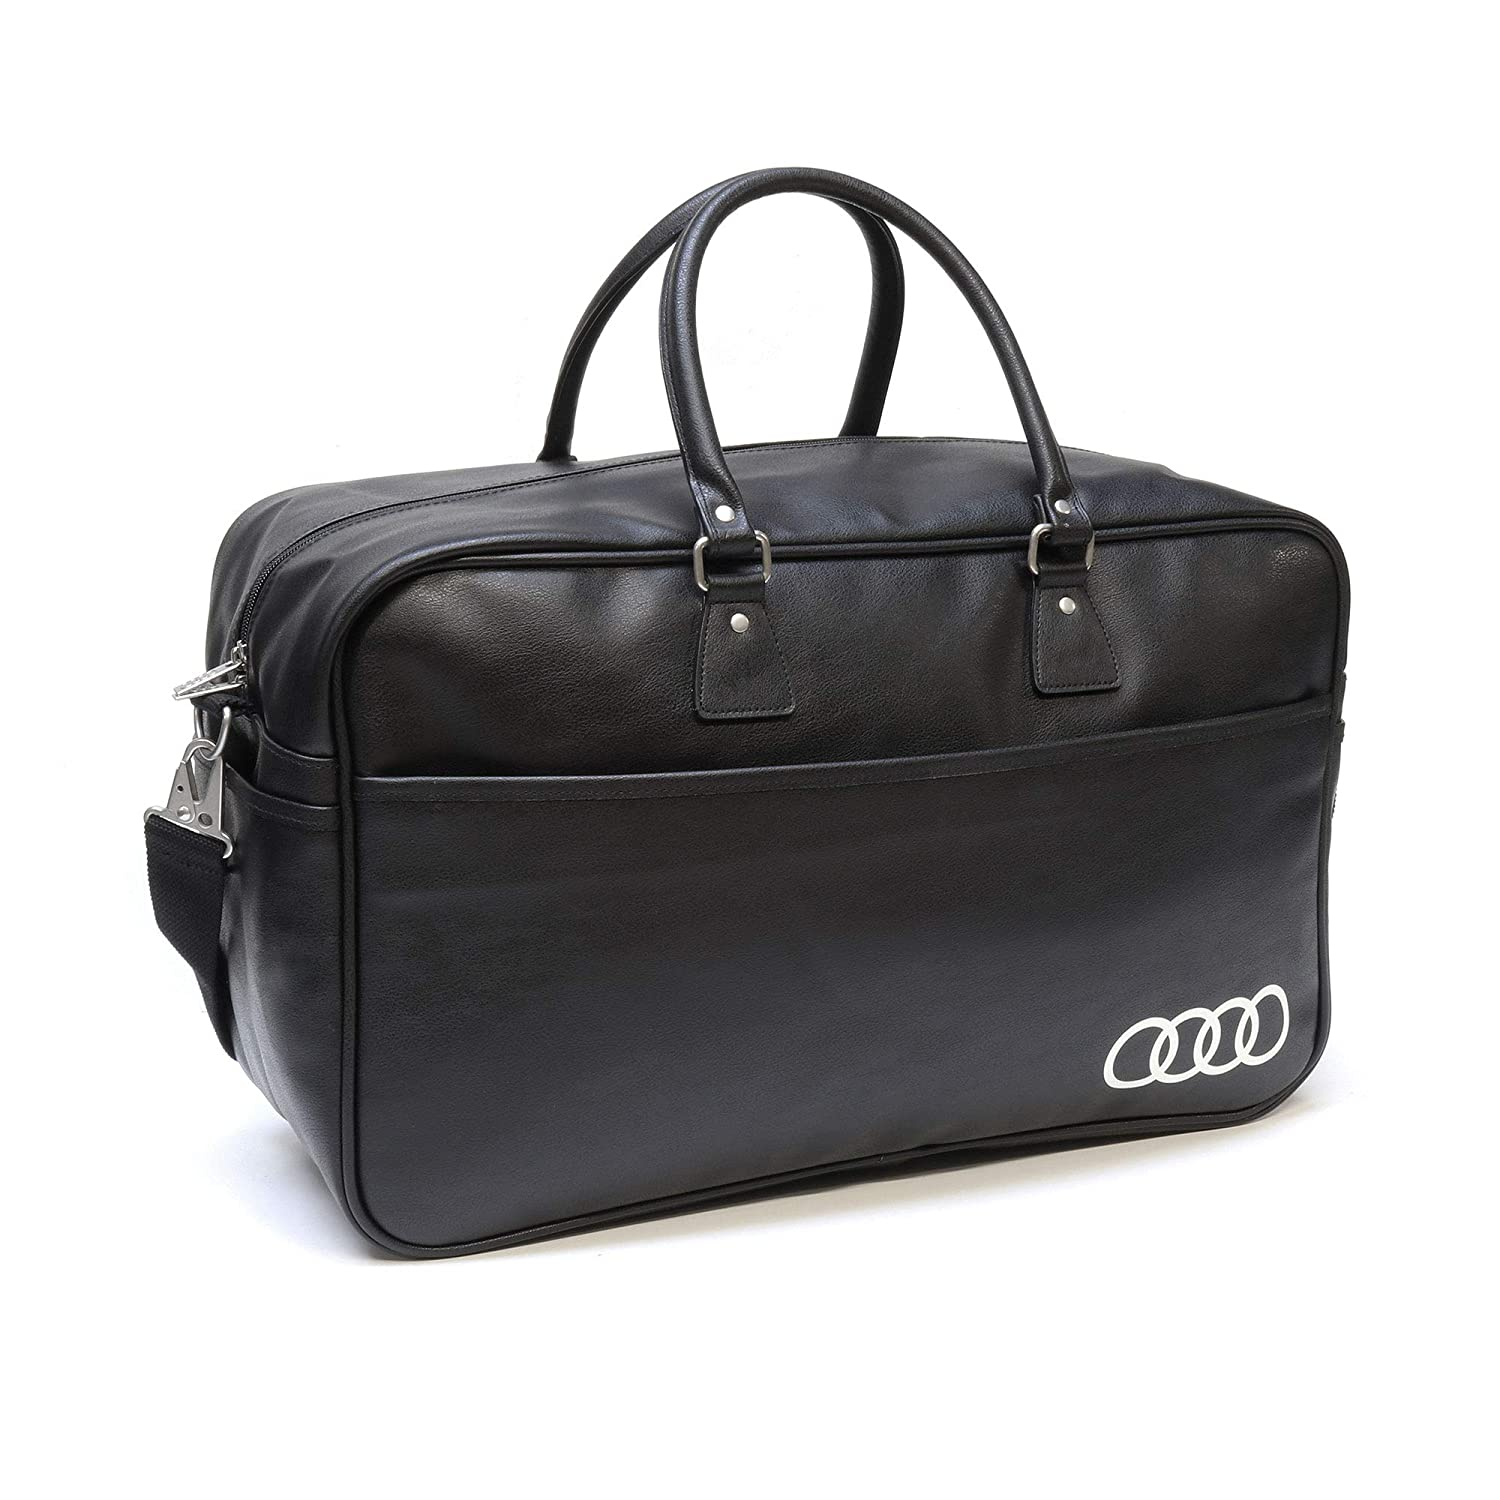 Audi Leisure Bag